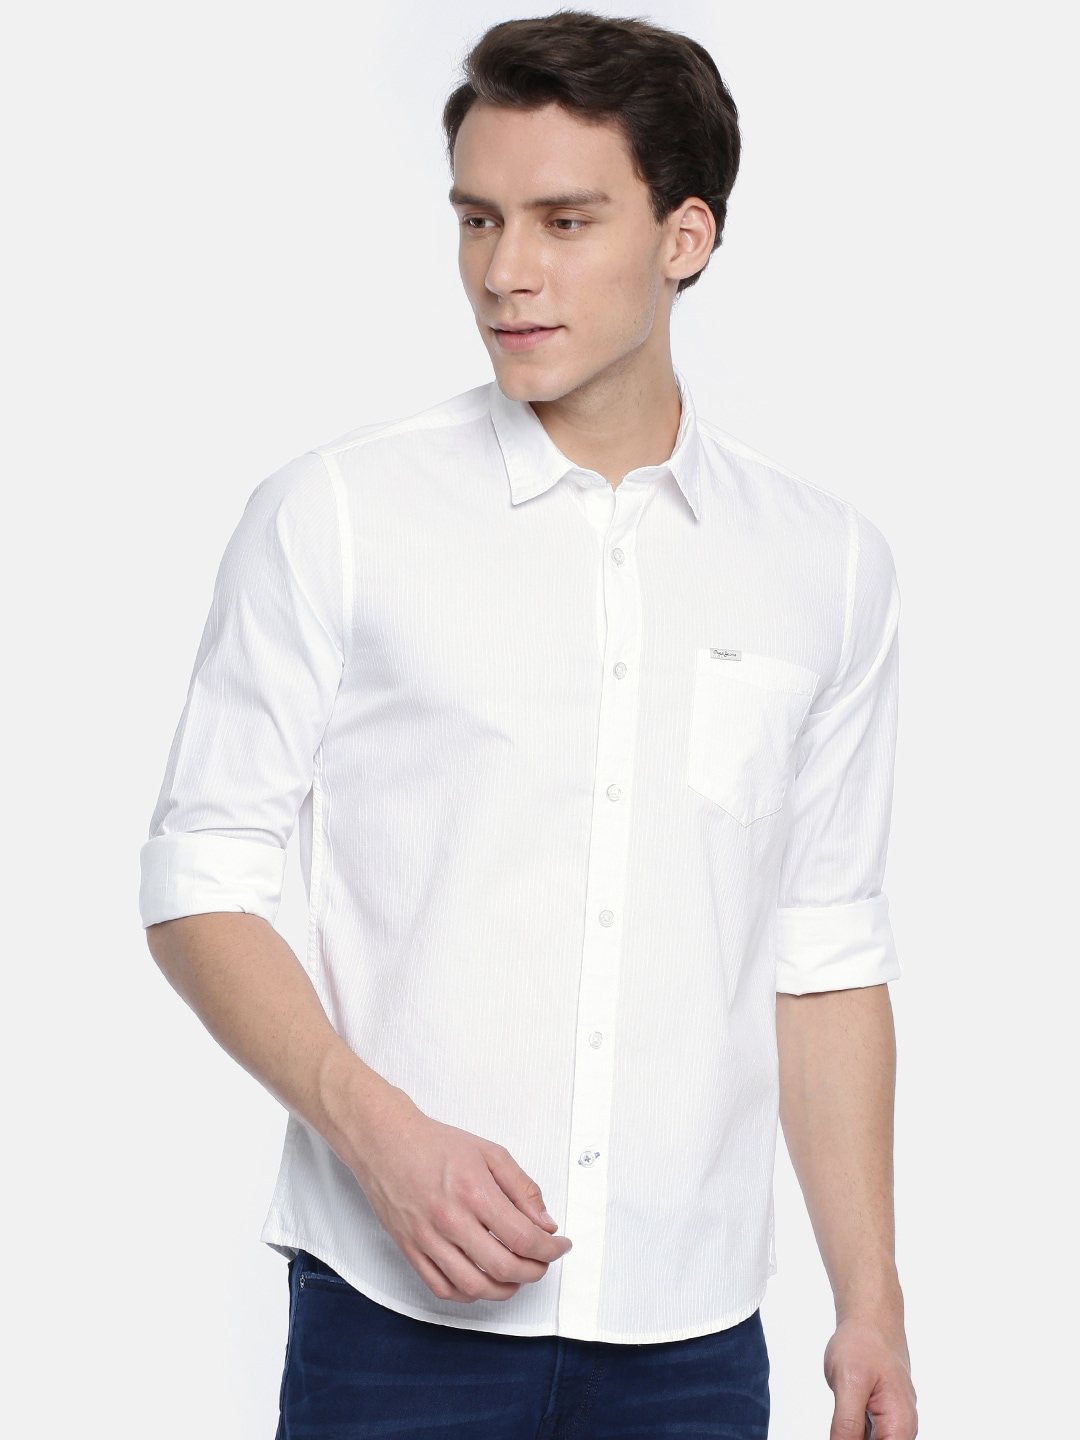 5117c0dd8a8c White Jeans Shirts - Buy White Jeans Shirts online in India